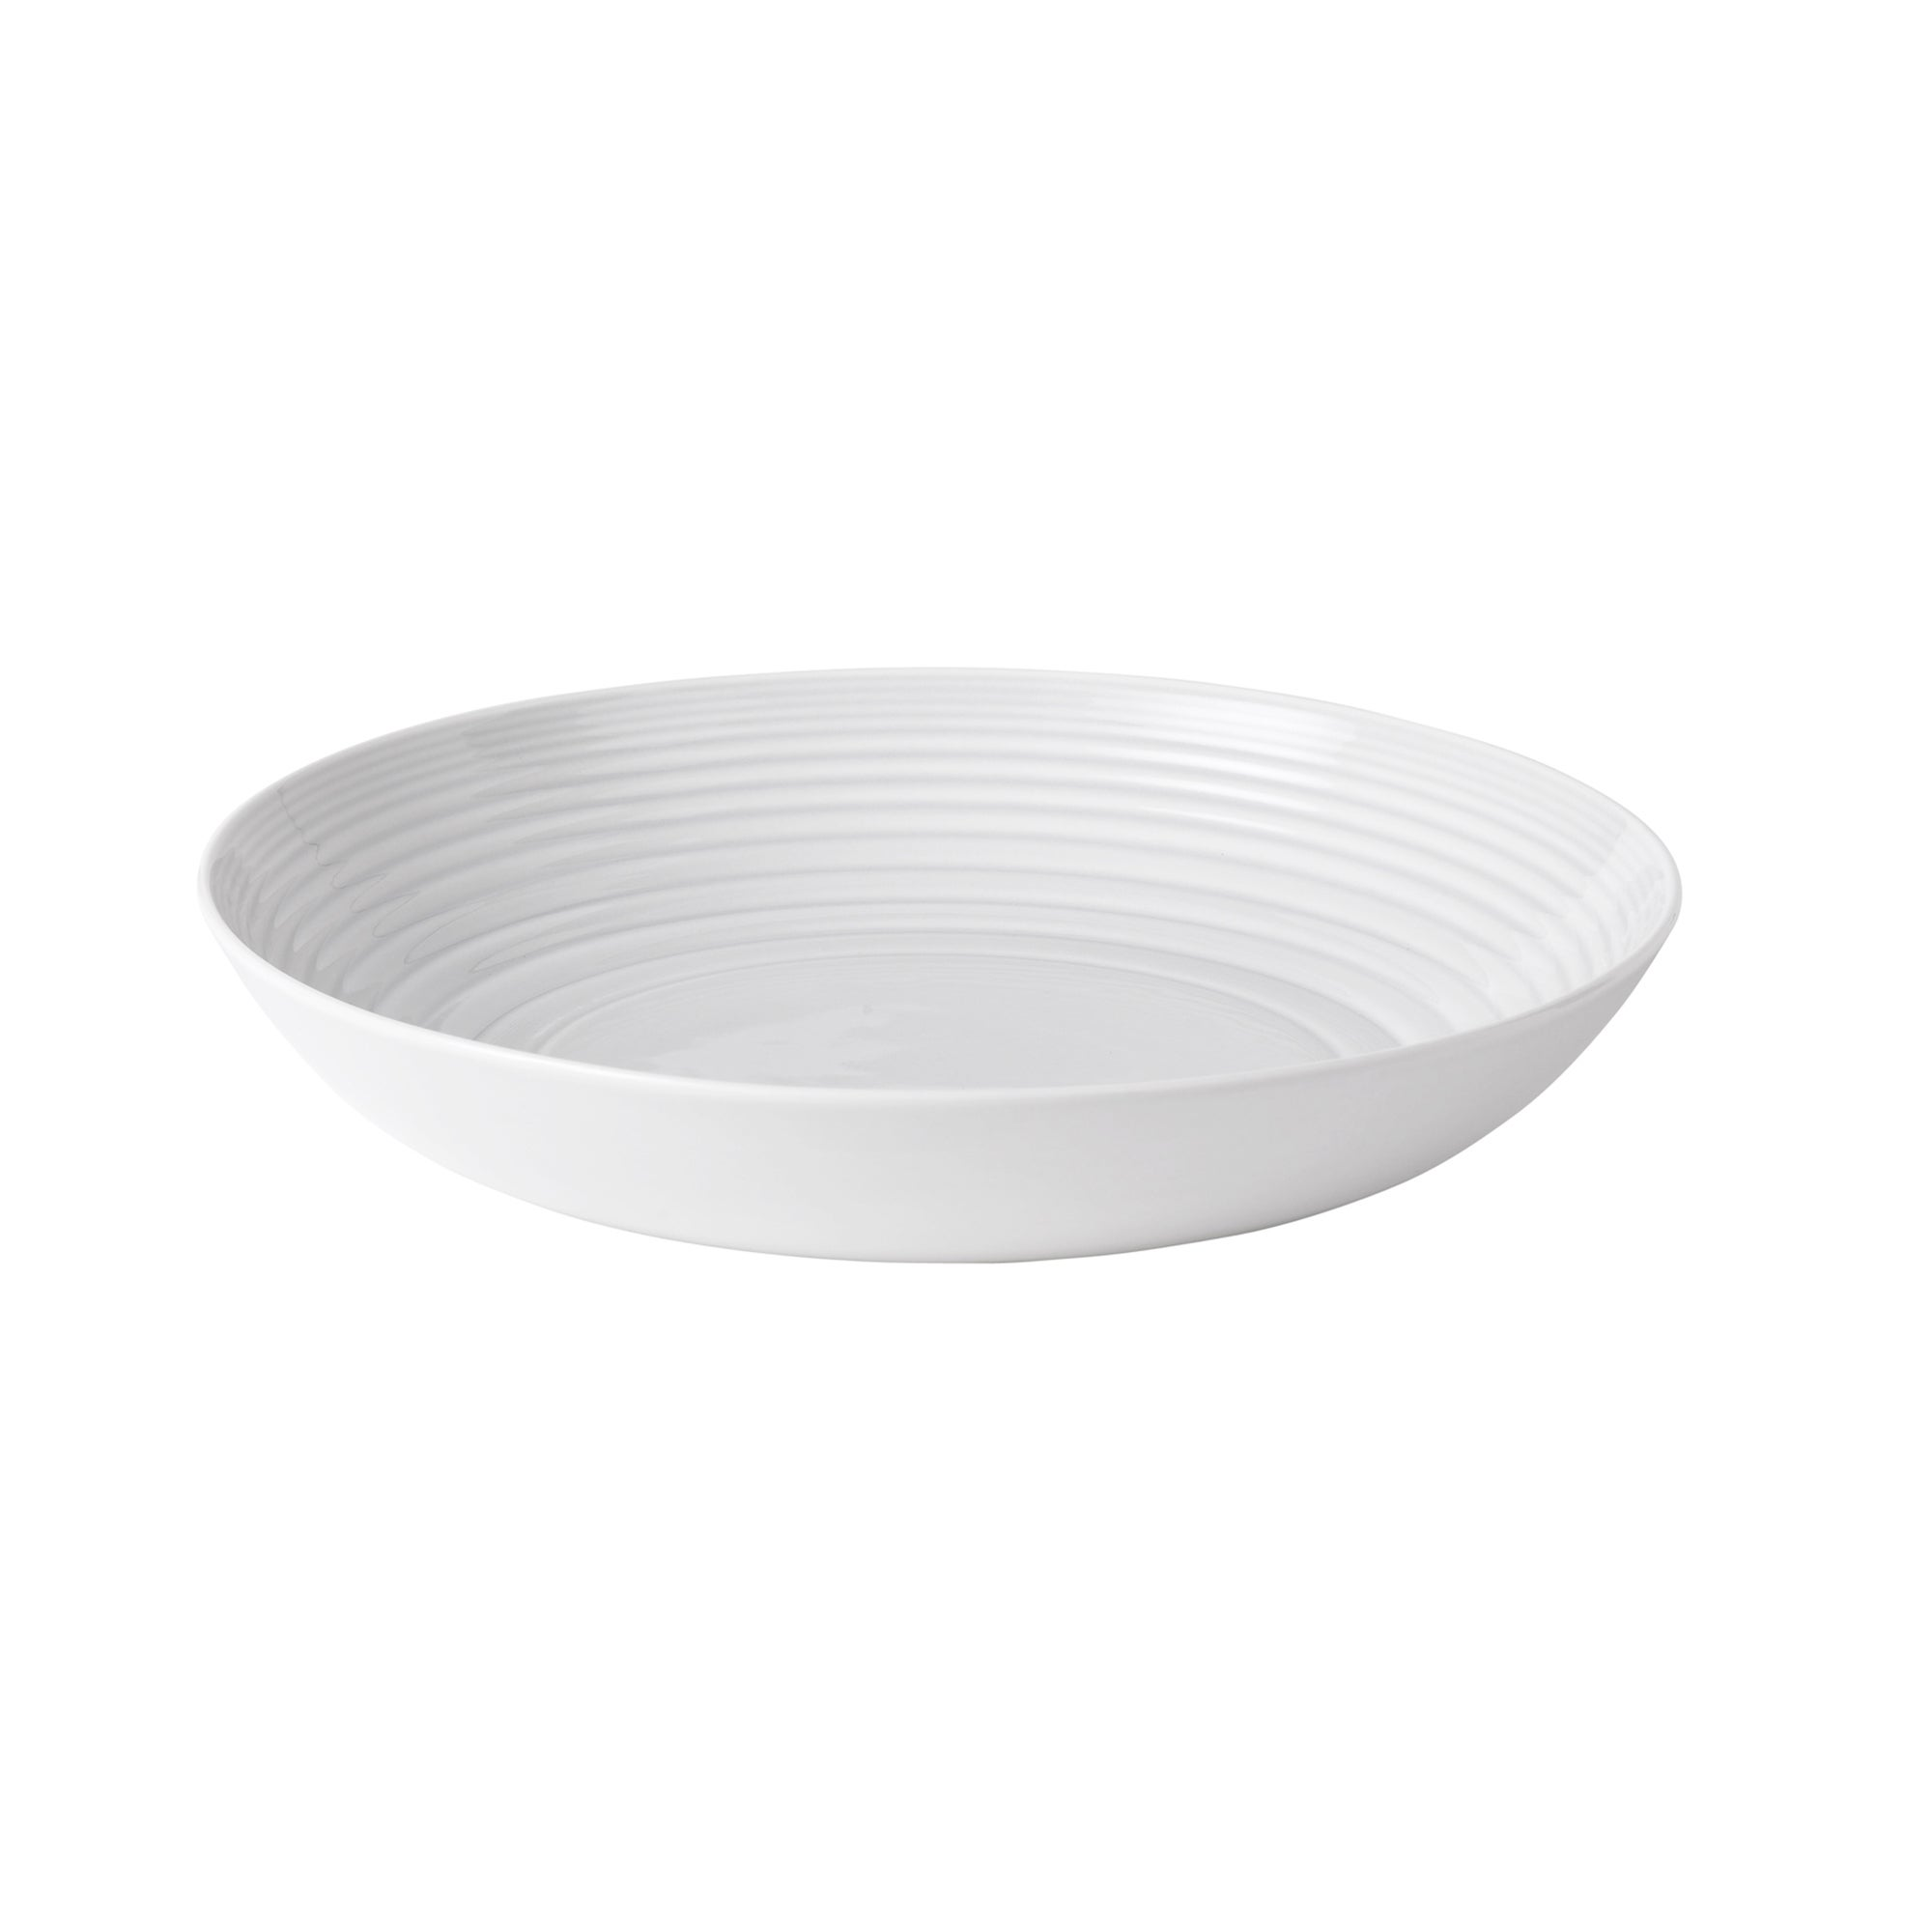 Click to view product details and reviews for Gordon Ramsay By Royal Doulton White Maze Serving Bowl White.